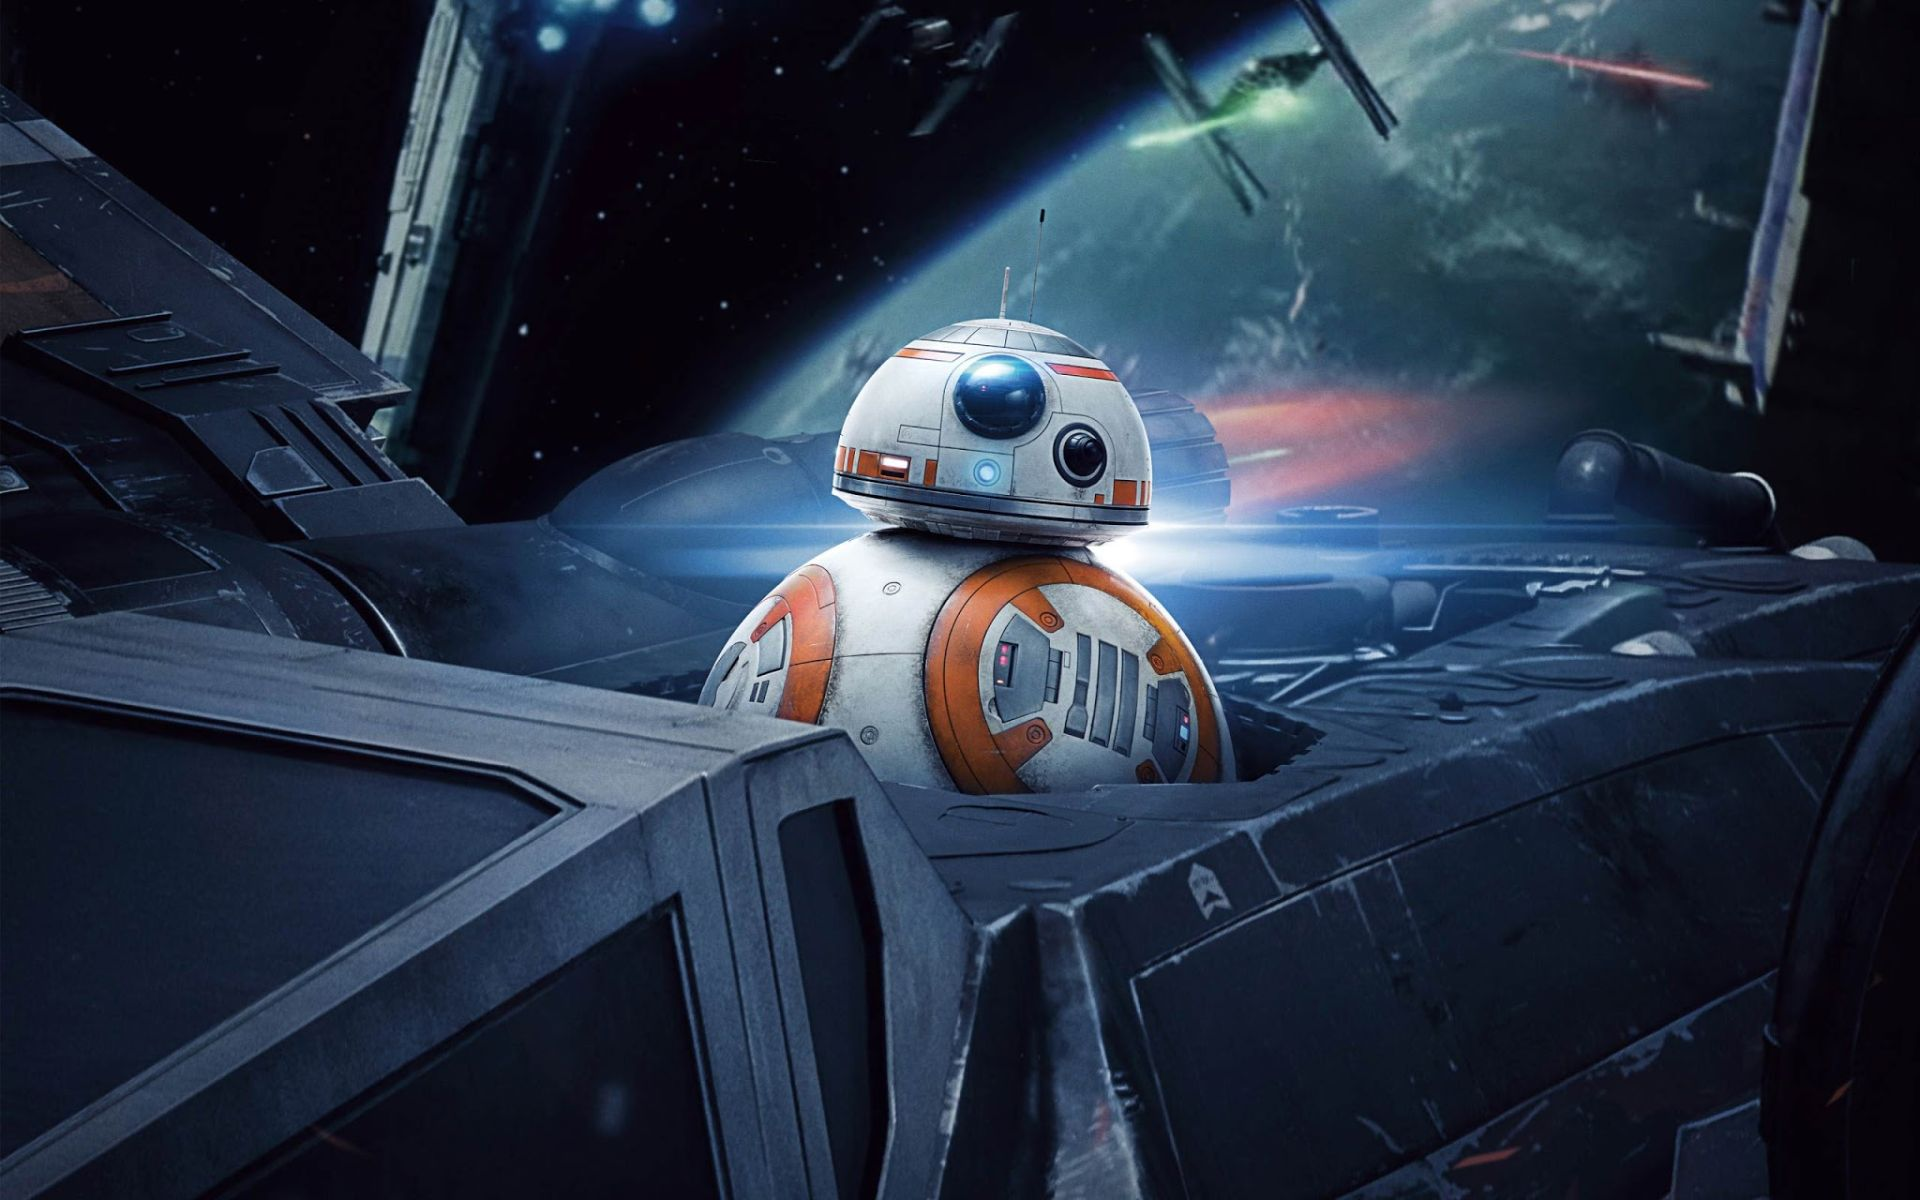 34 Star Wars Screensaver Wallpapers Wallpaperboat